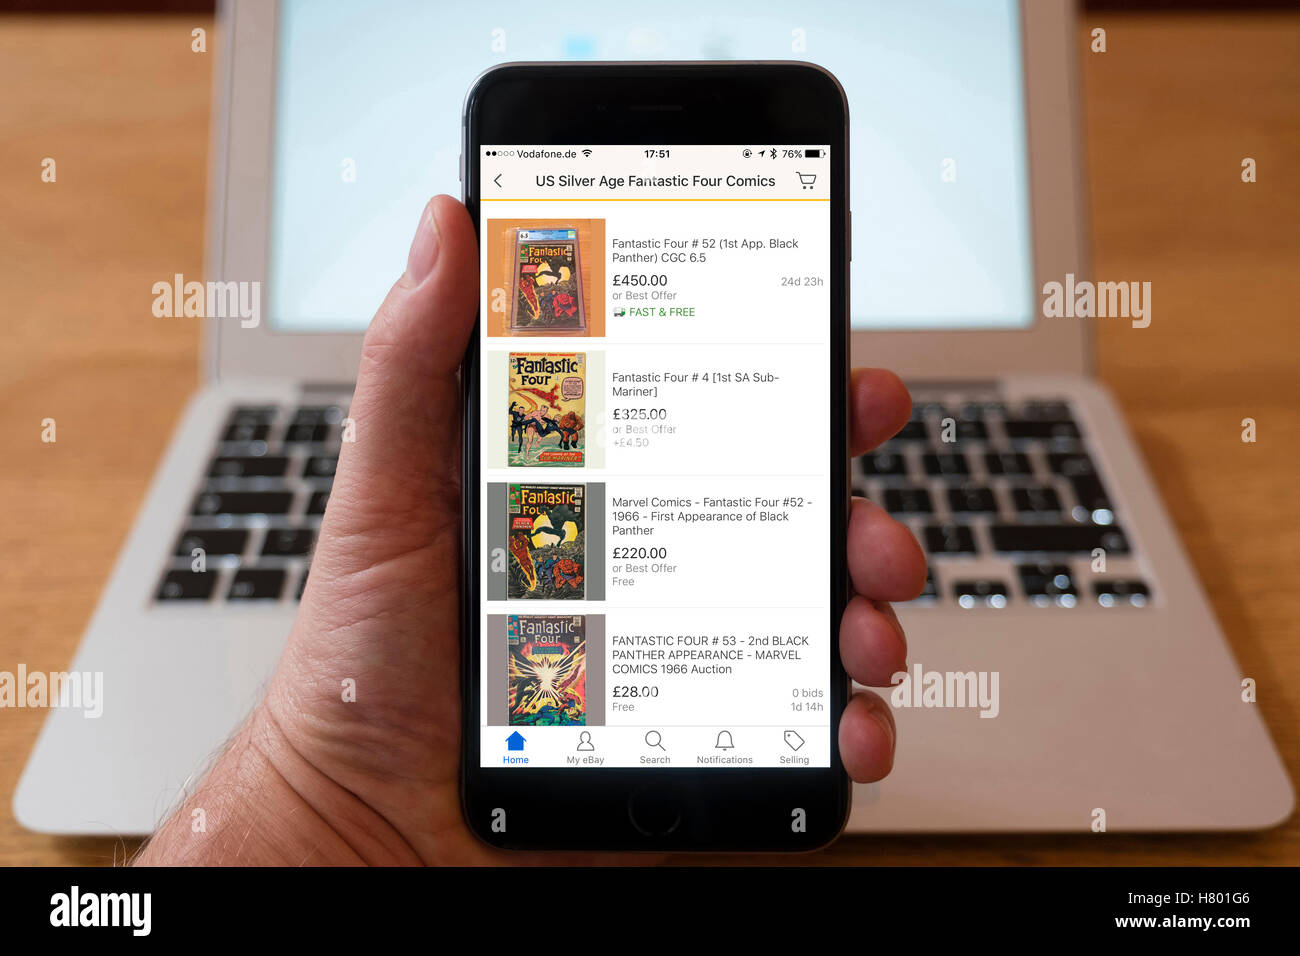 Using iPhone smartphone to display collectible comics for auction and sale on eBay - Stock Image